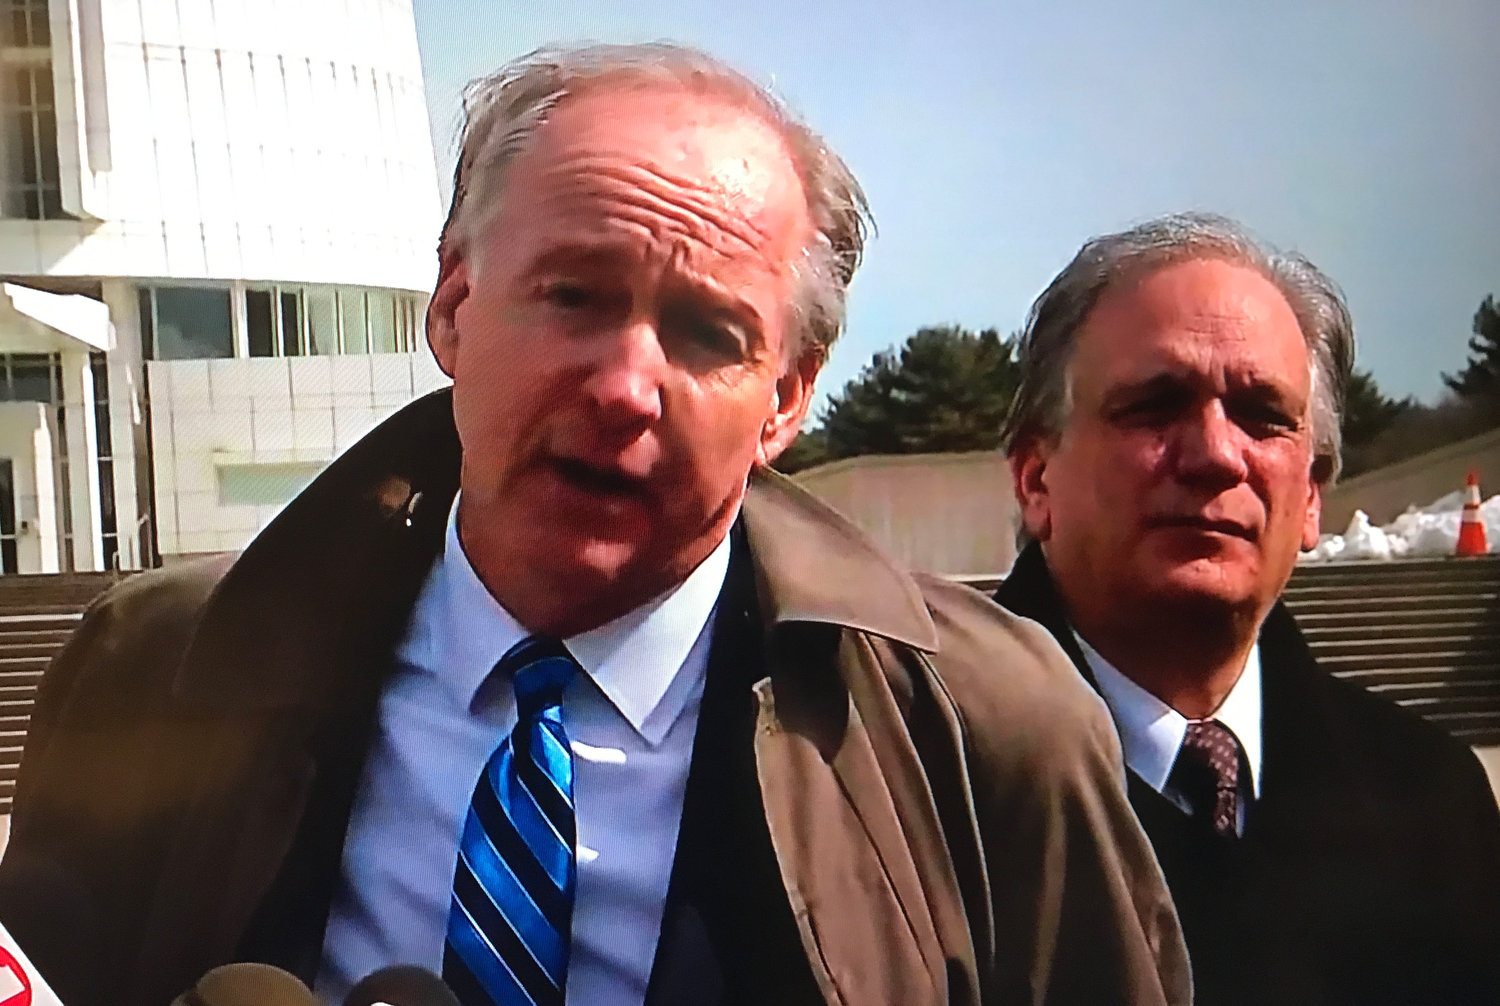 Former Nassau County Executive Ed Mangano's attorney Kevin Keating addressed reporters outside federal court in Central Islip after Mangano and his wife, Linda, were found guilty of multiple corruption charges at their second trial.